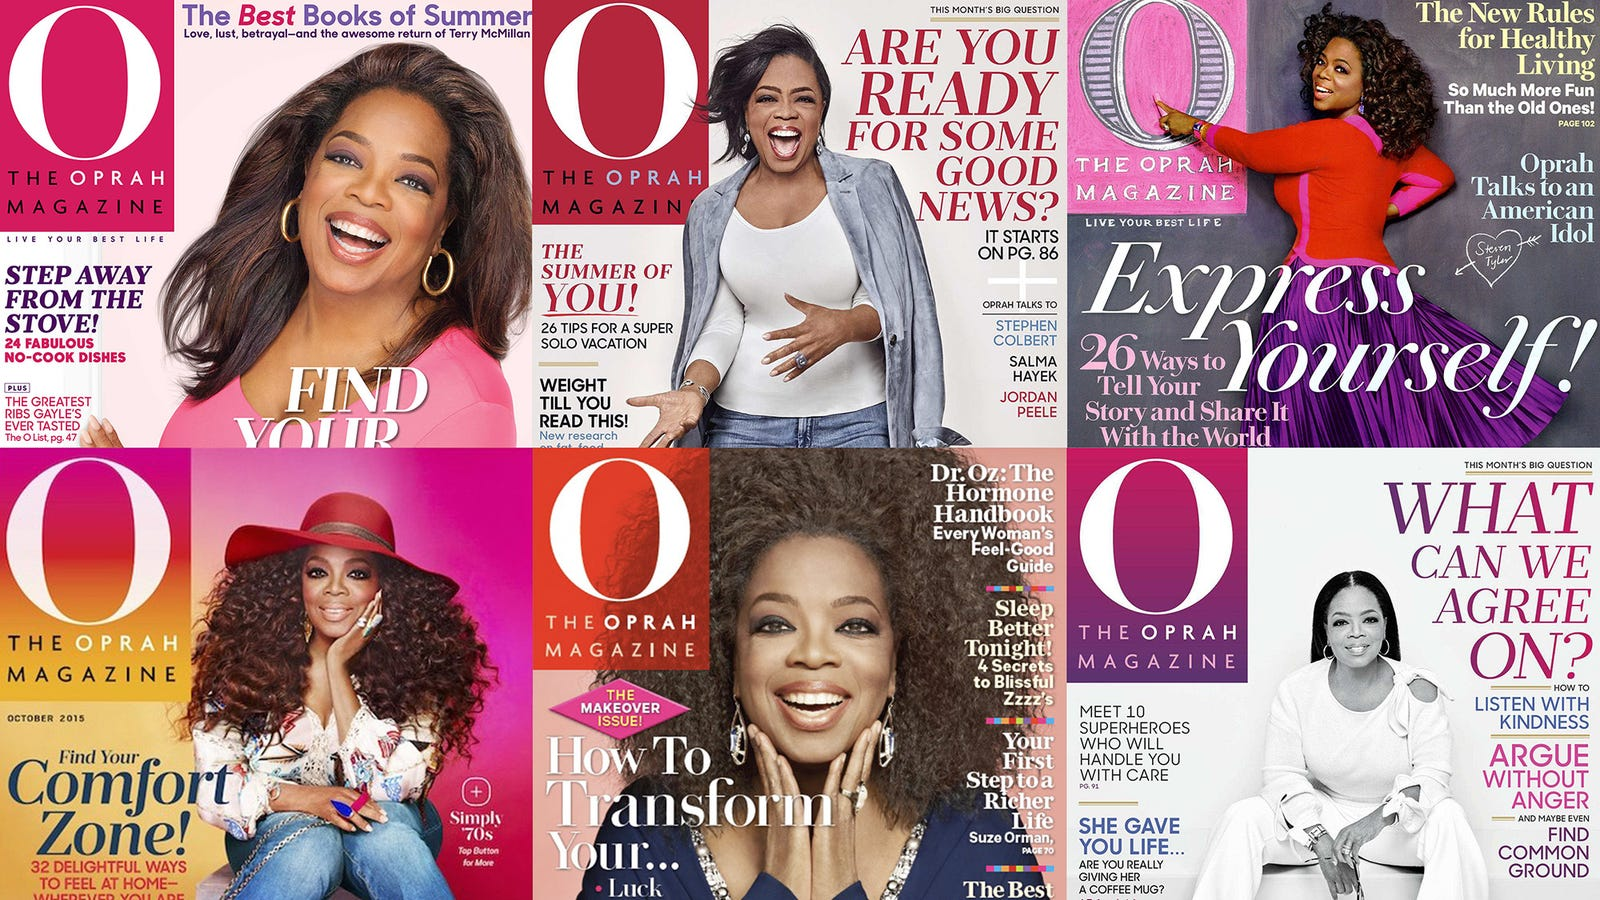 Oprah Winfrey Breaks Record For Most Appearances On The Cover Of 'O Magazine'